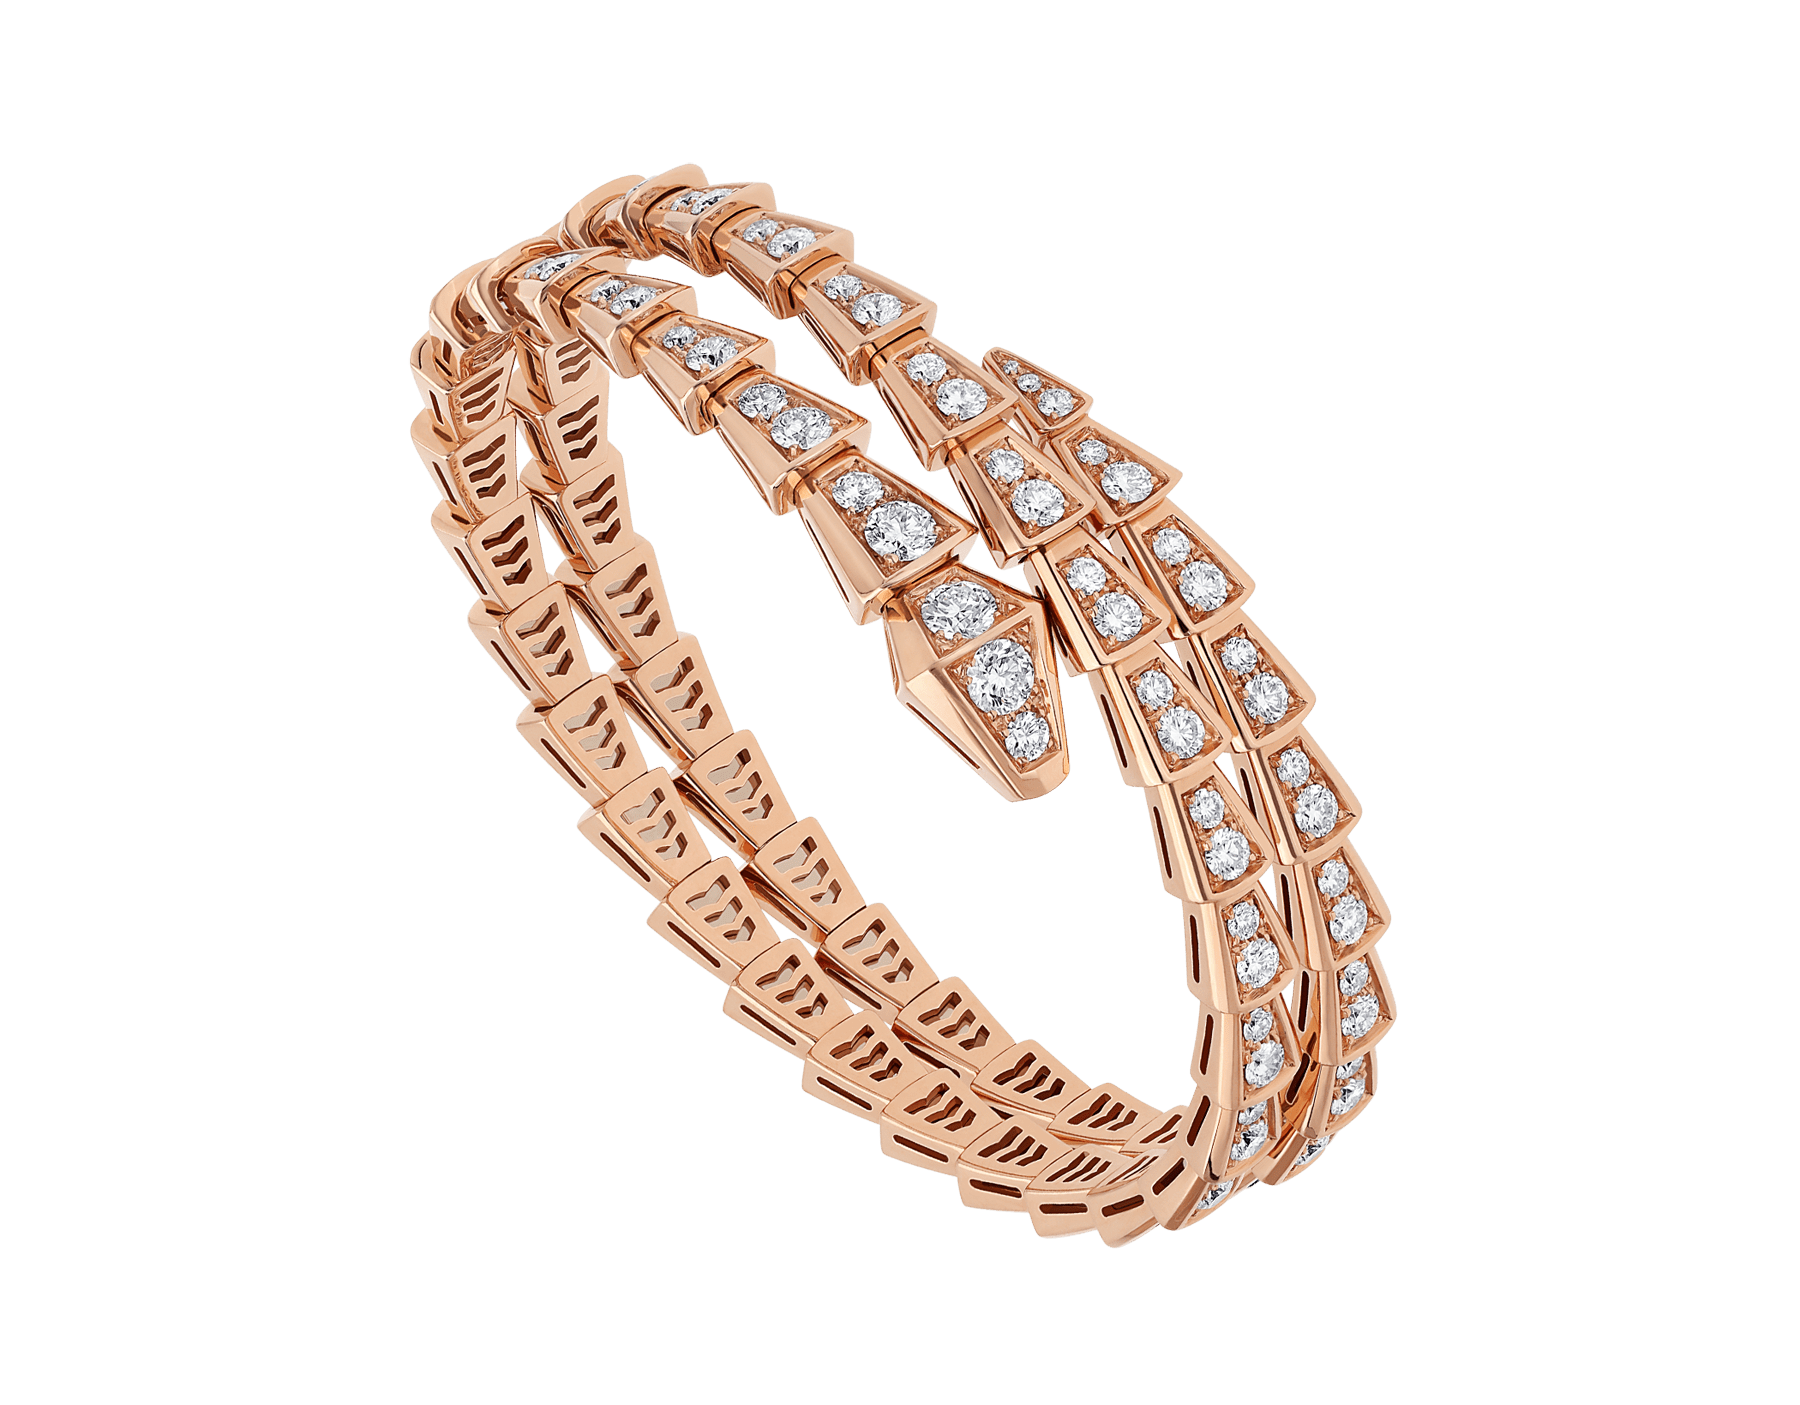 Serpenti Viper two-coil 18 kt rose gold bracelet, set with pavé diamonds BR858796 image 1